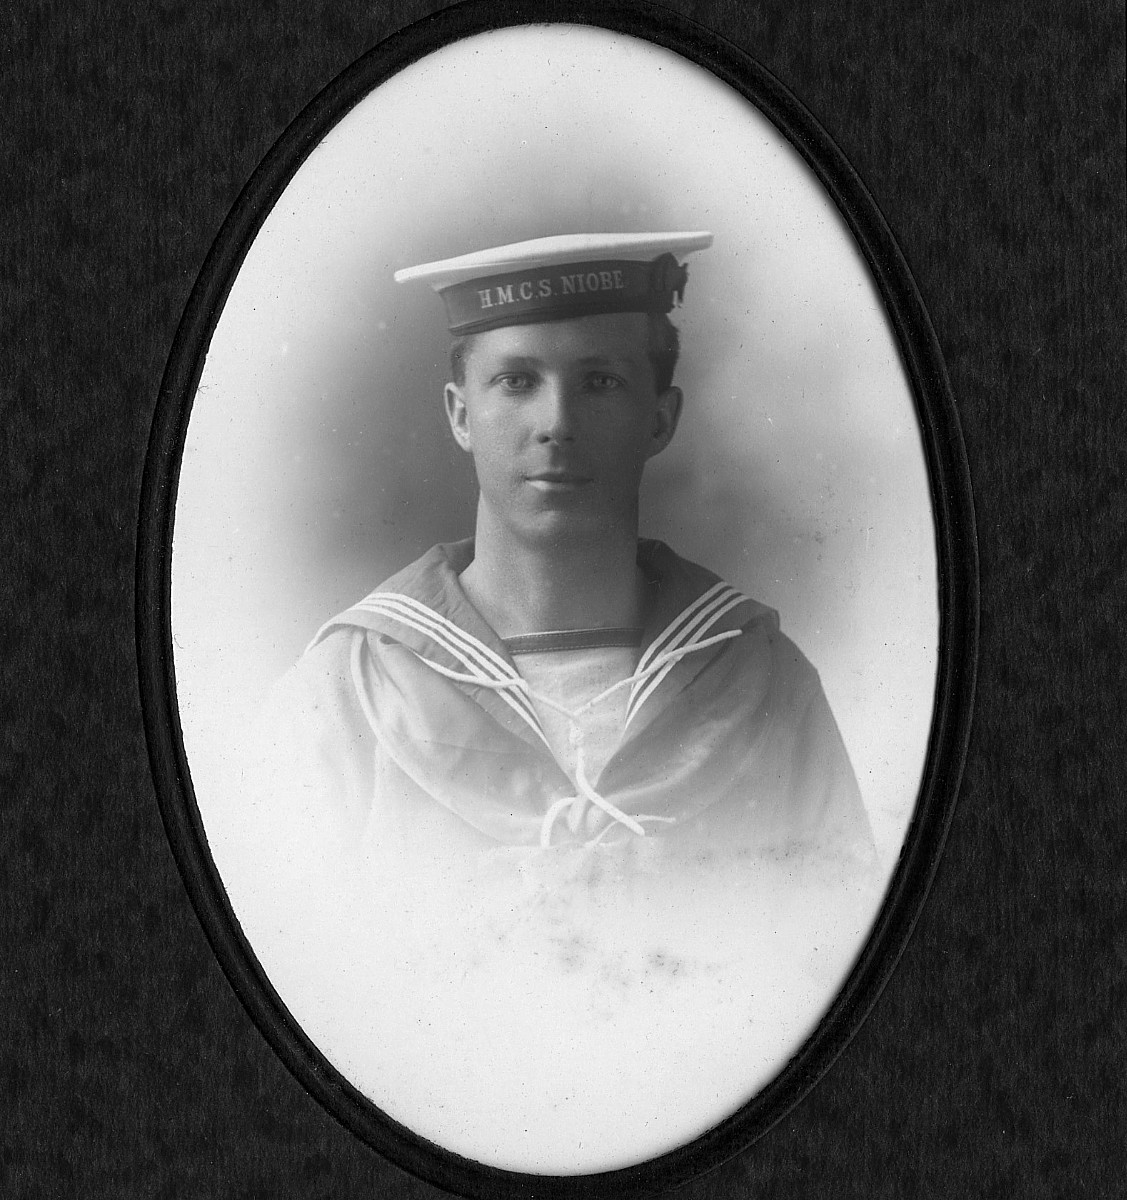 possibly William Rennie